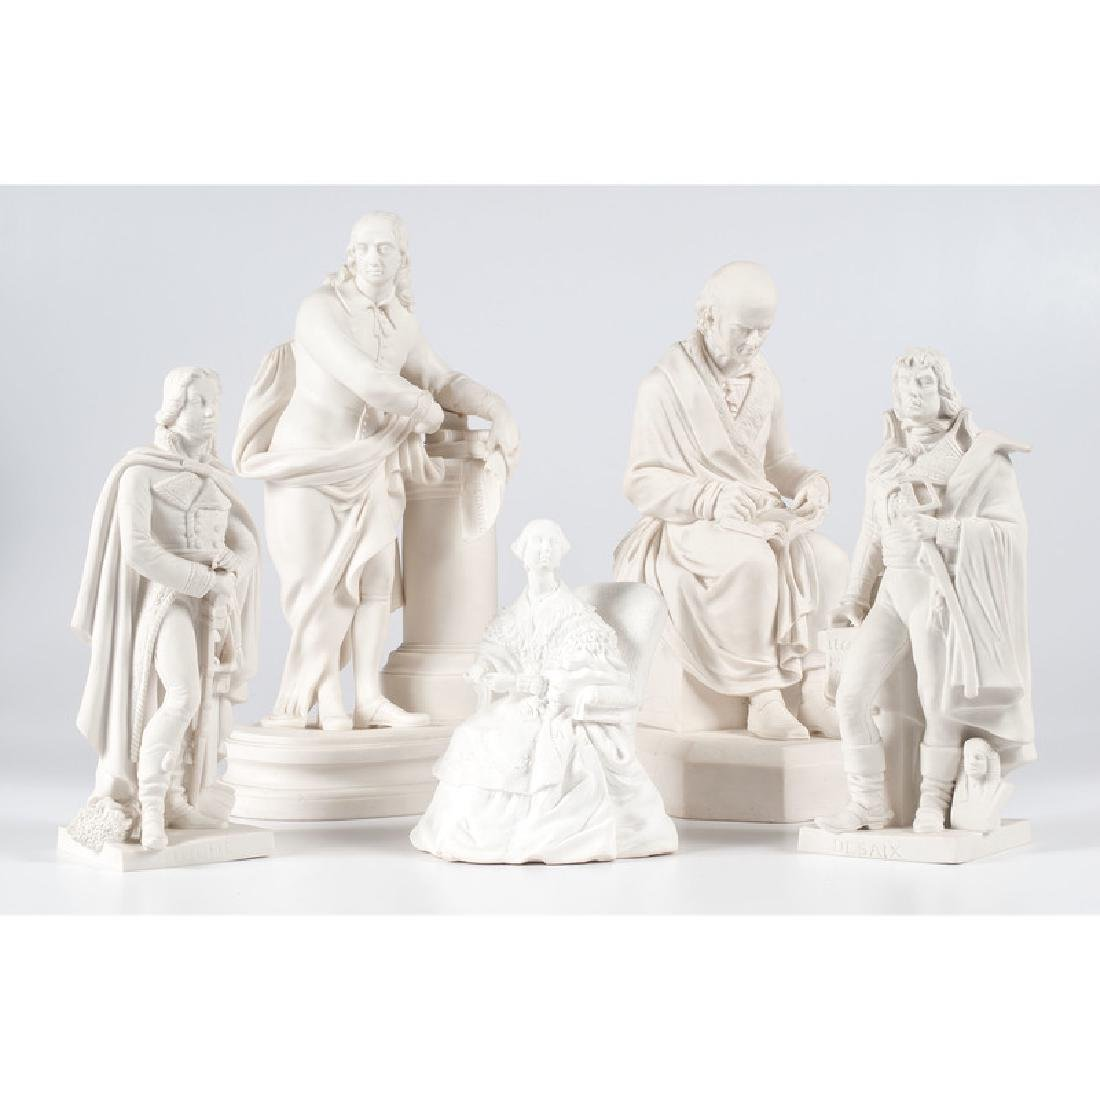 Parian Statues of Continental Figures